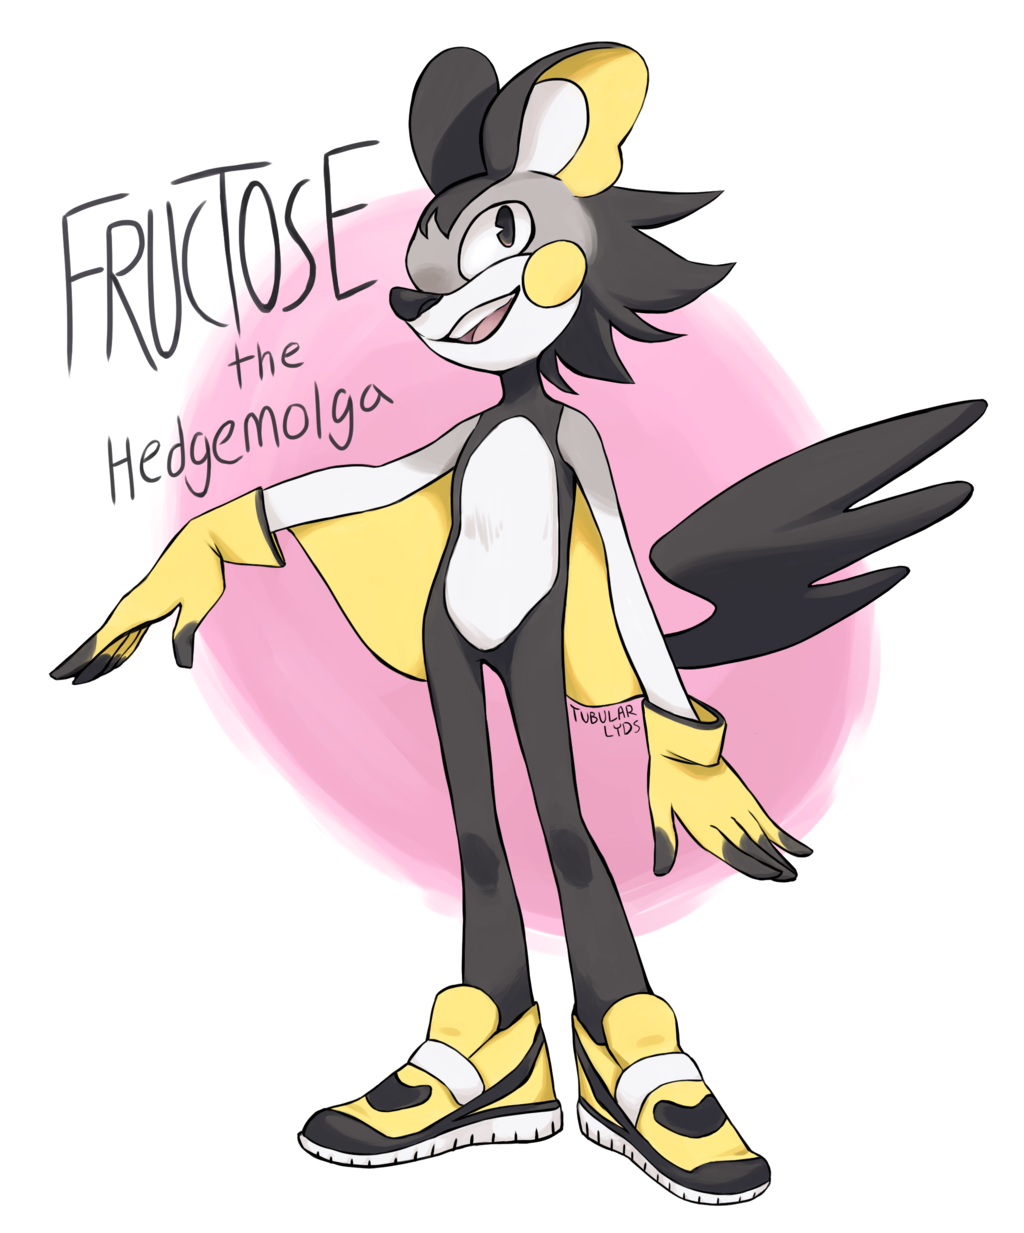 Most recent image: Fructose